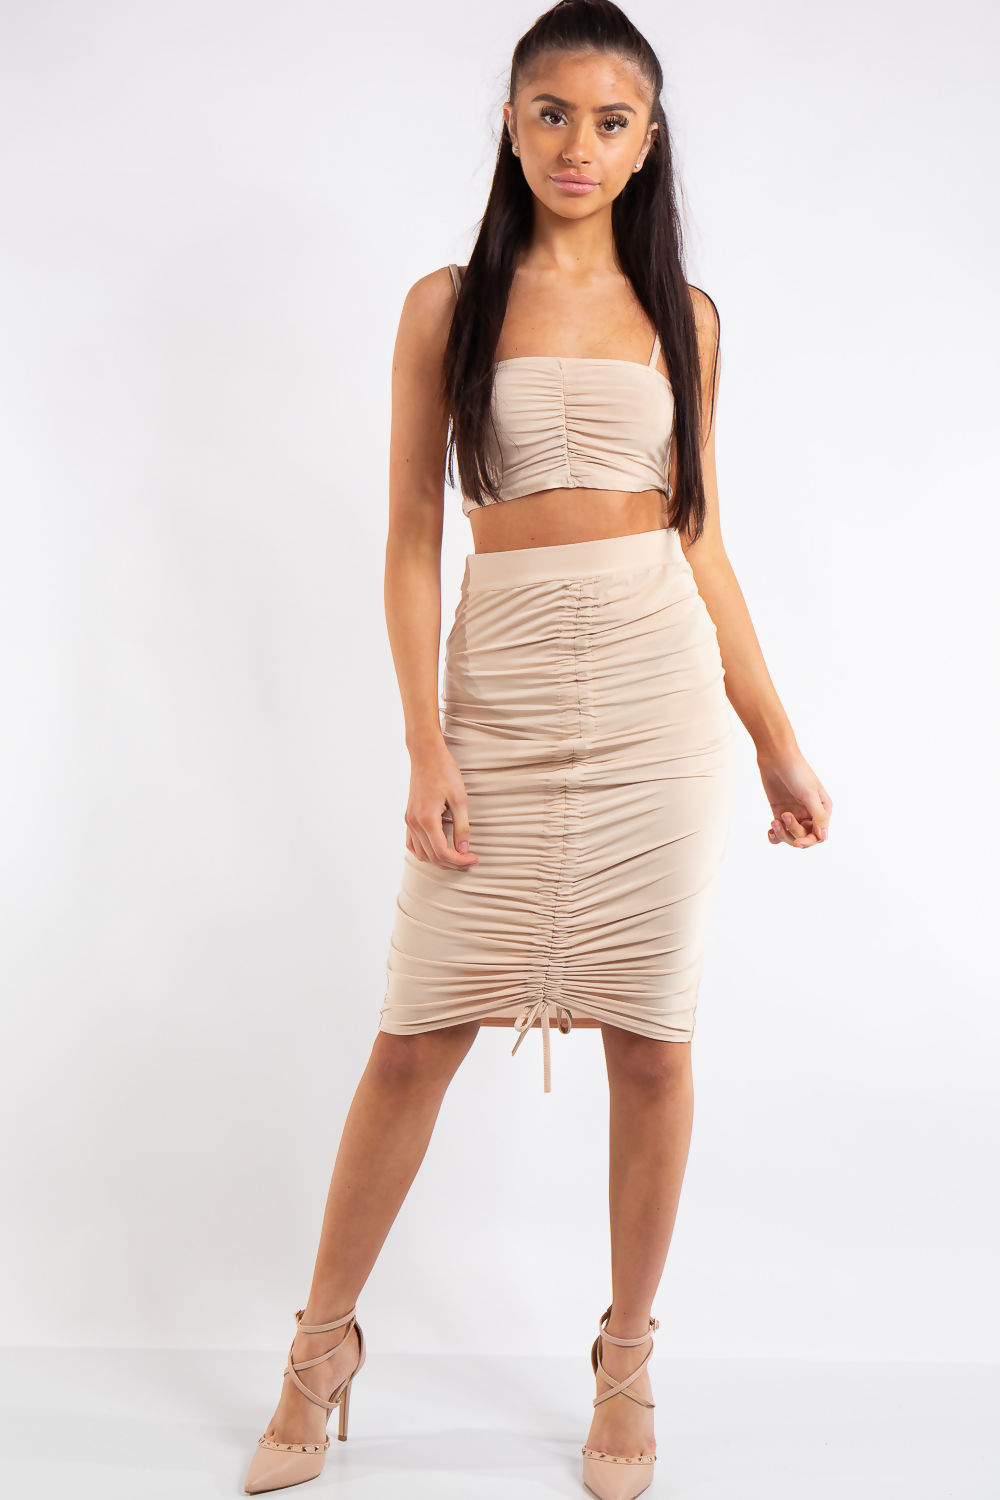 7b3f9c7f15 Aleah Nude Ruched Slinky Crop Top Midi Skirt Co-ord